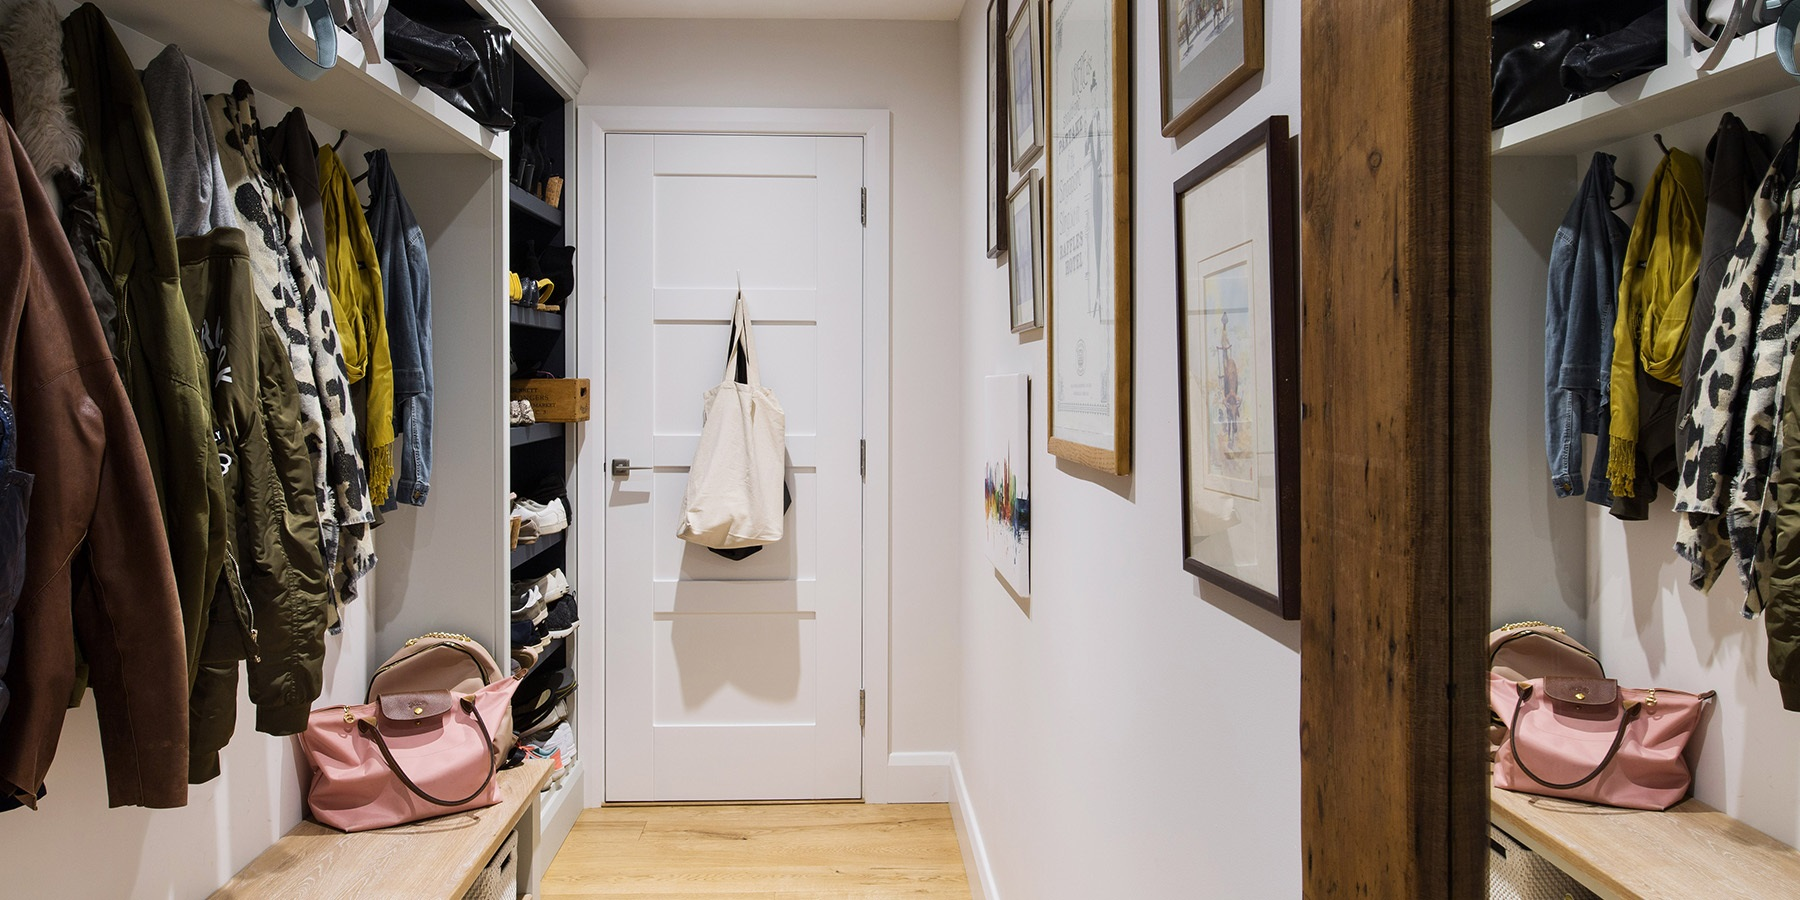 Bespoke bootroom | Handmade storage solutions | Burlanes - Burlanes design and create bespoke, handmade storage solutions for all rooms in your home